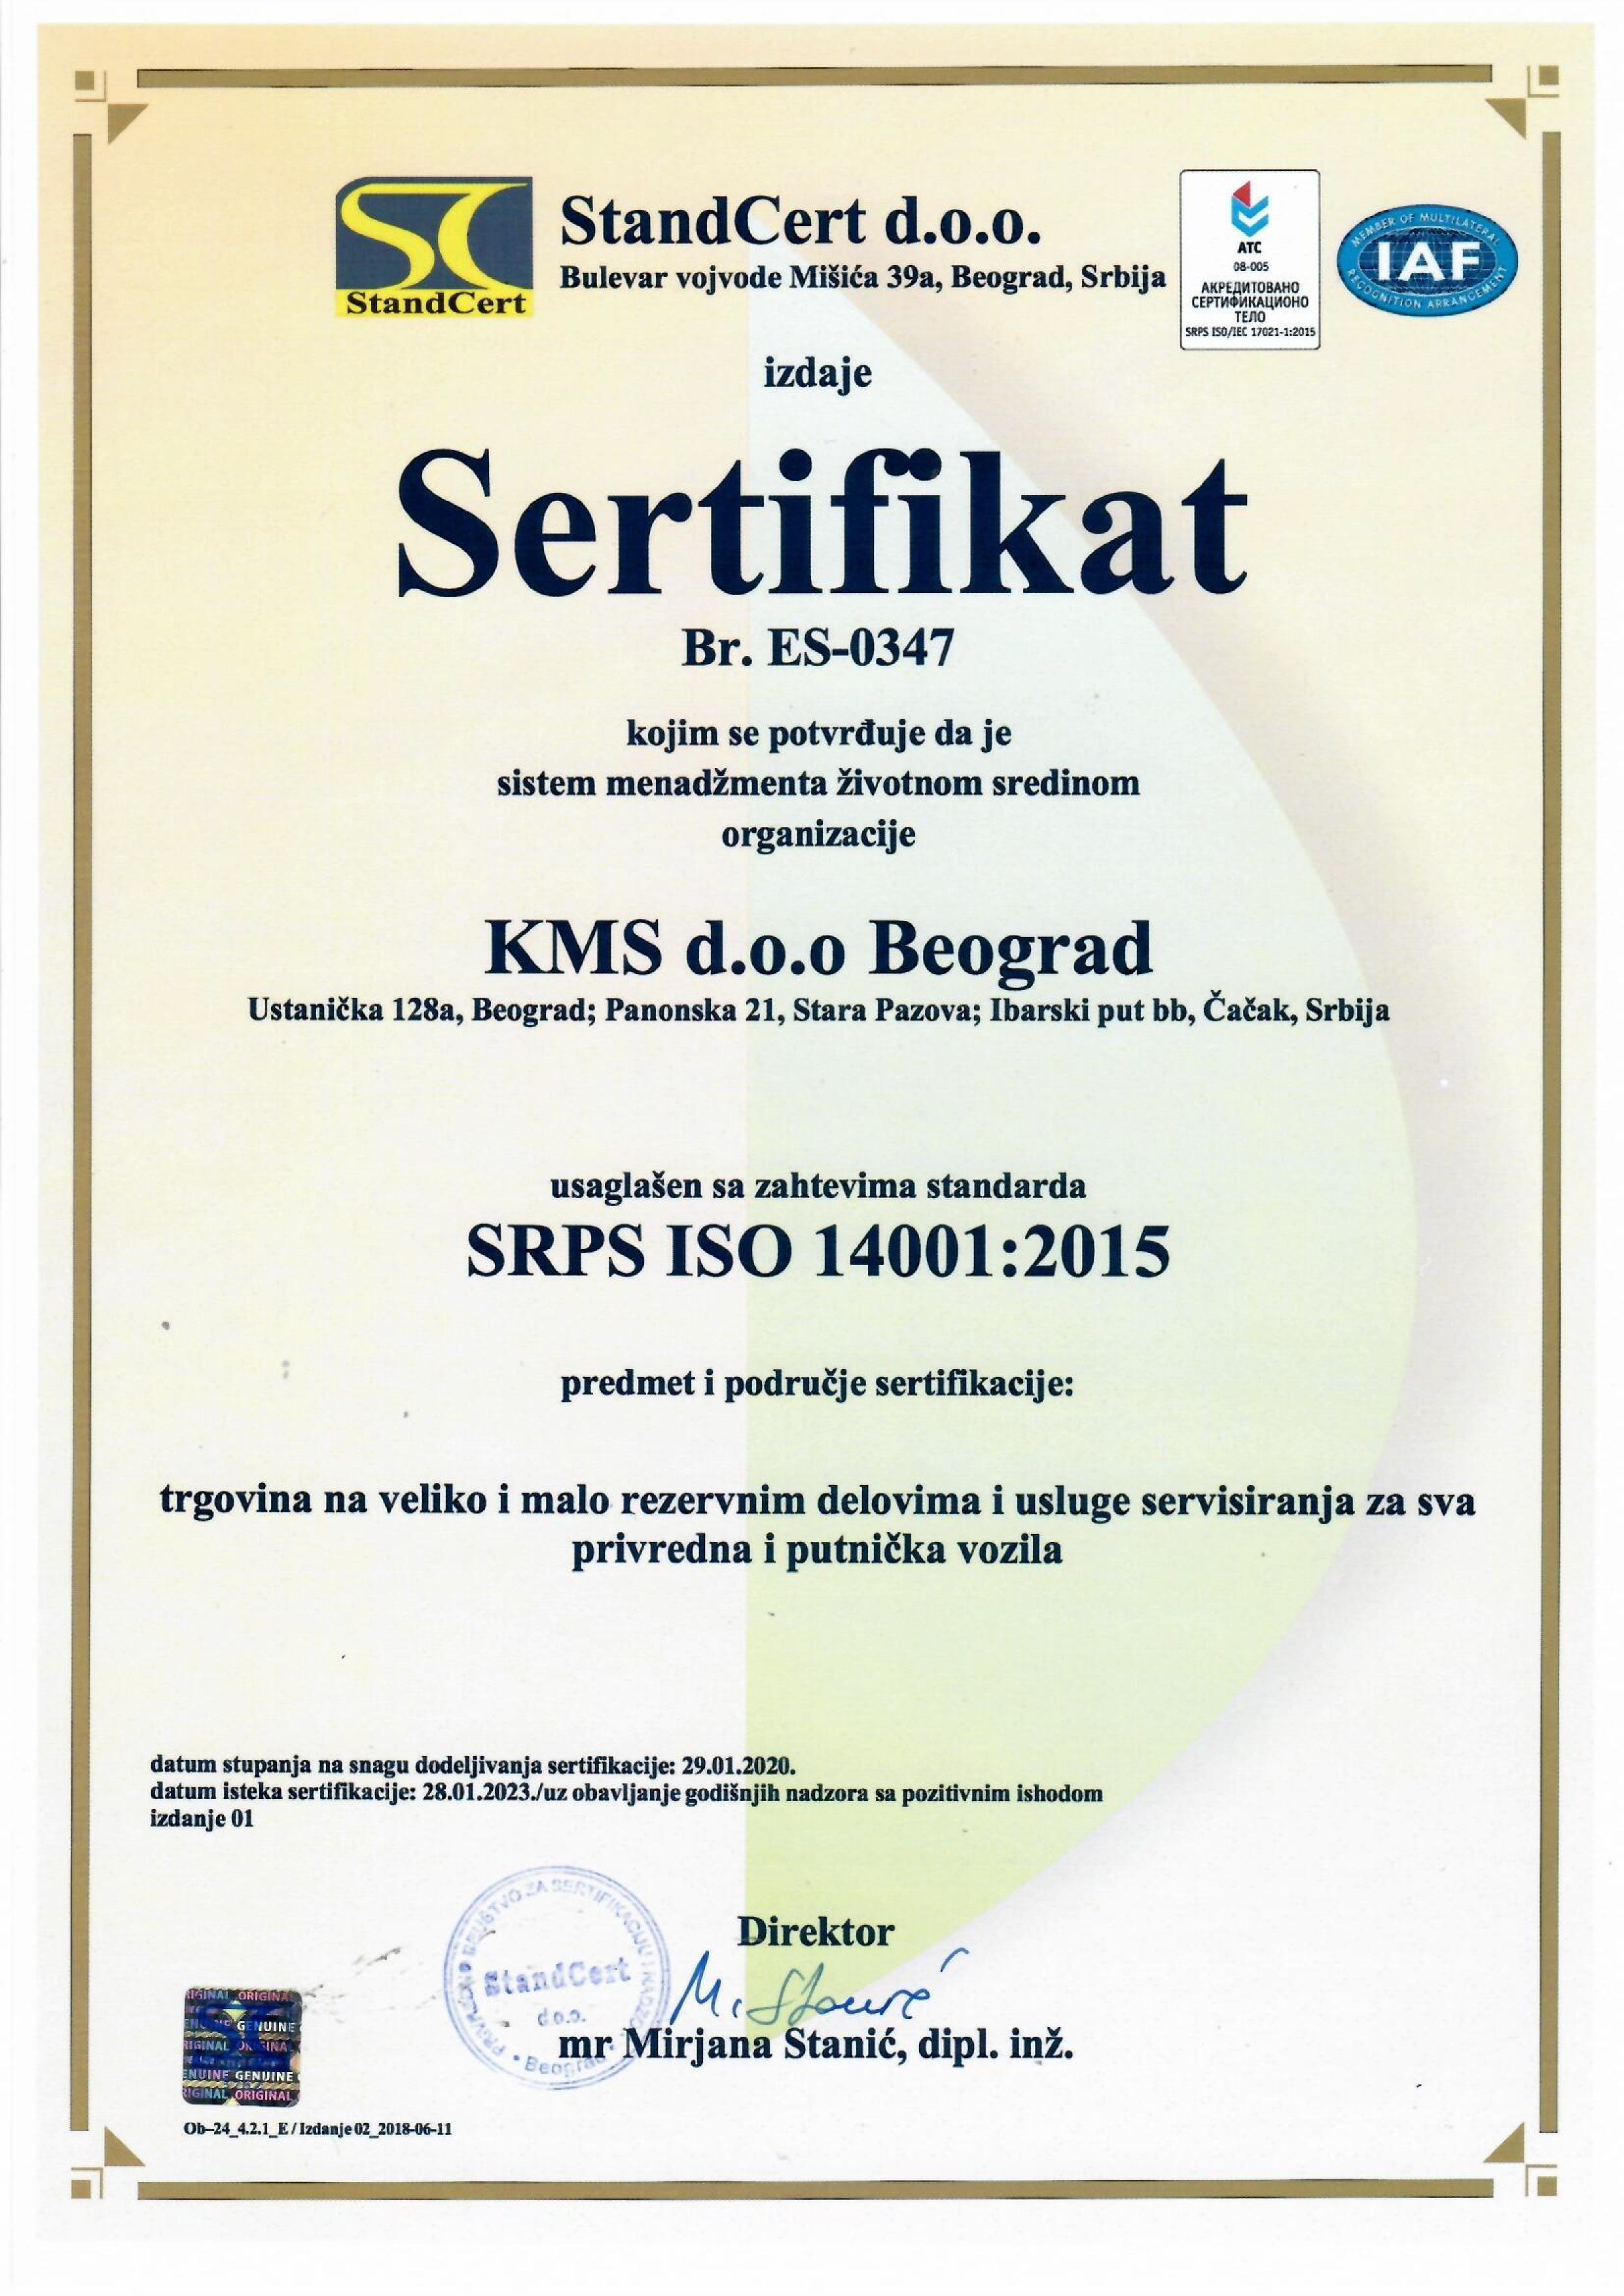 SRPS ISO 14001:2015